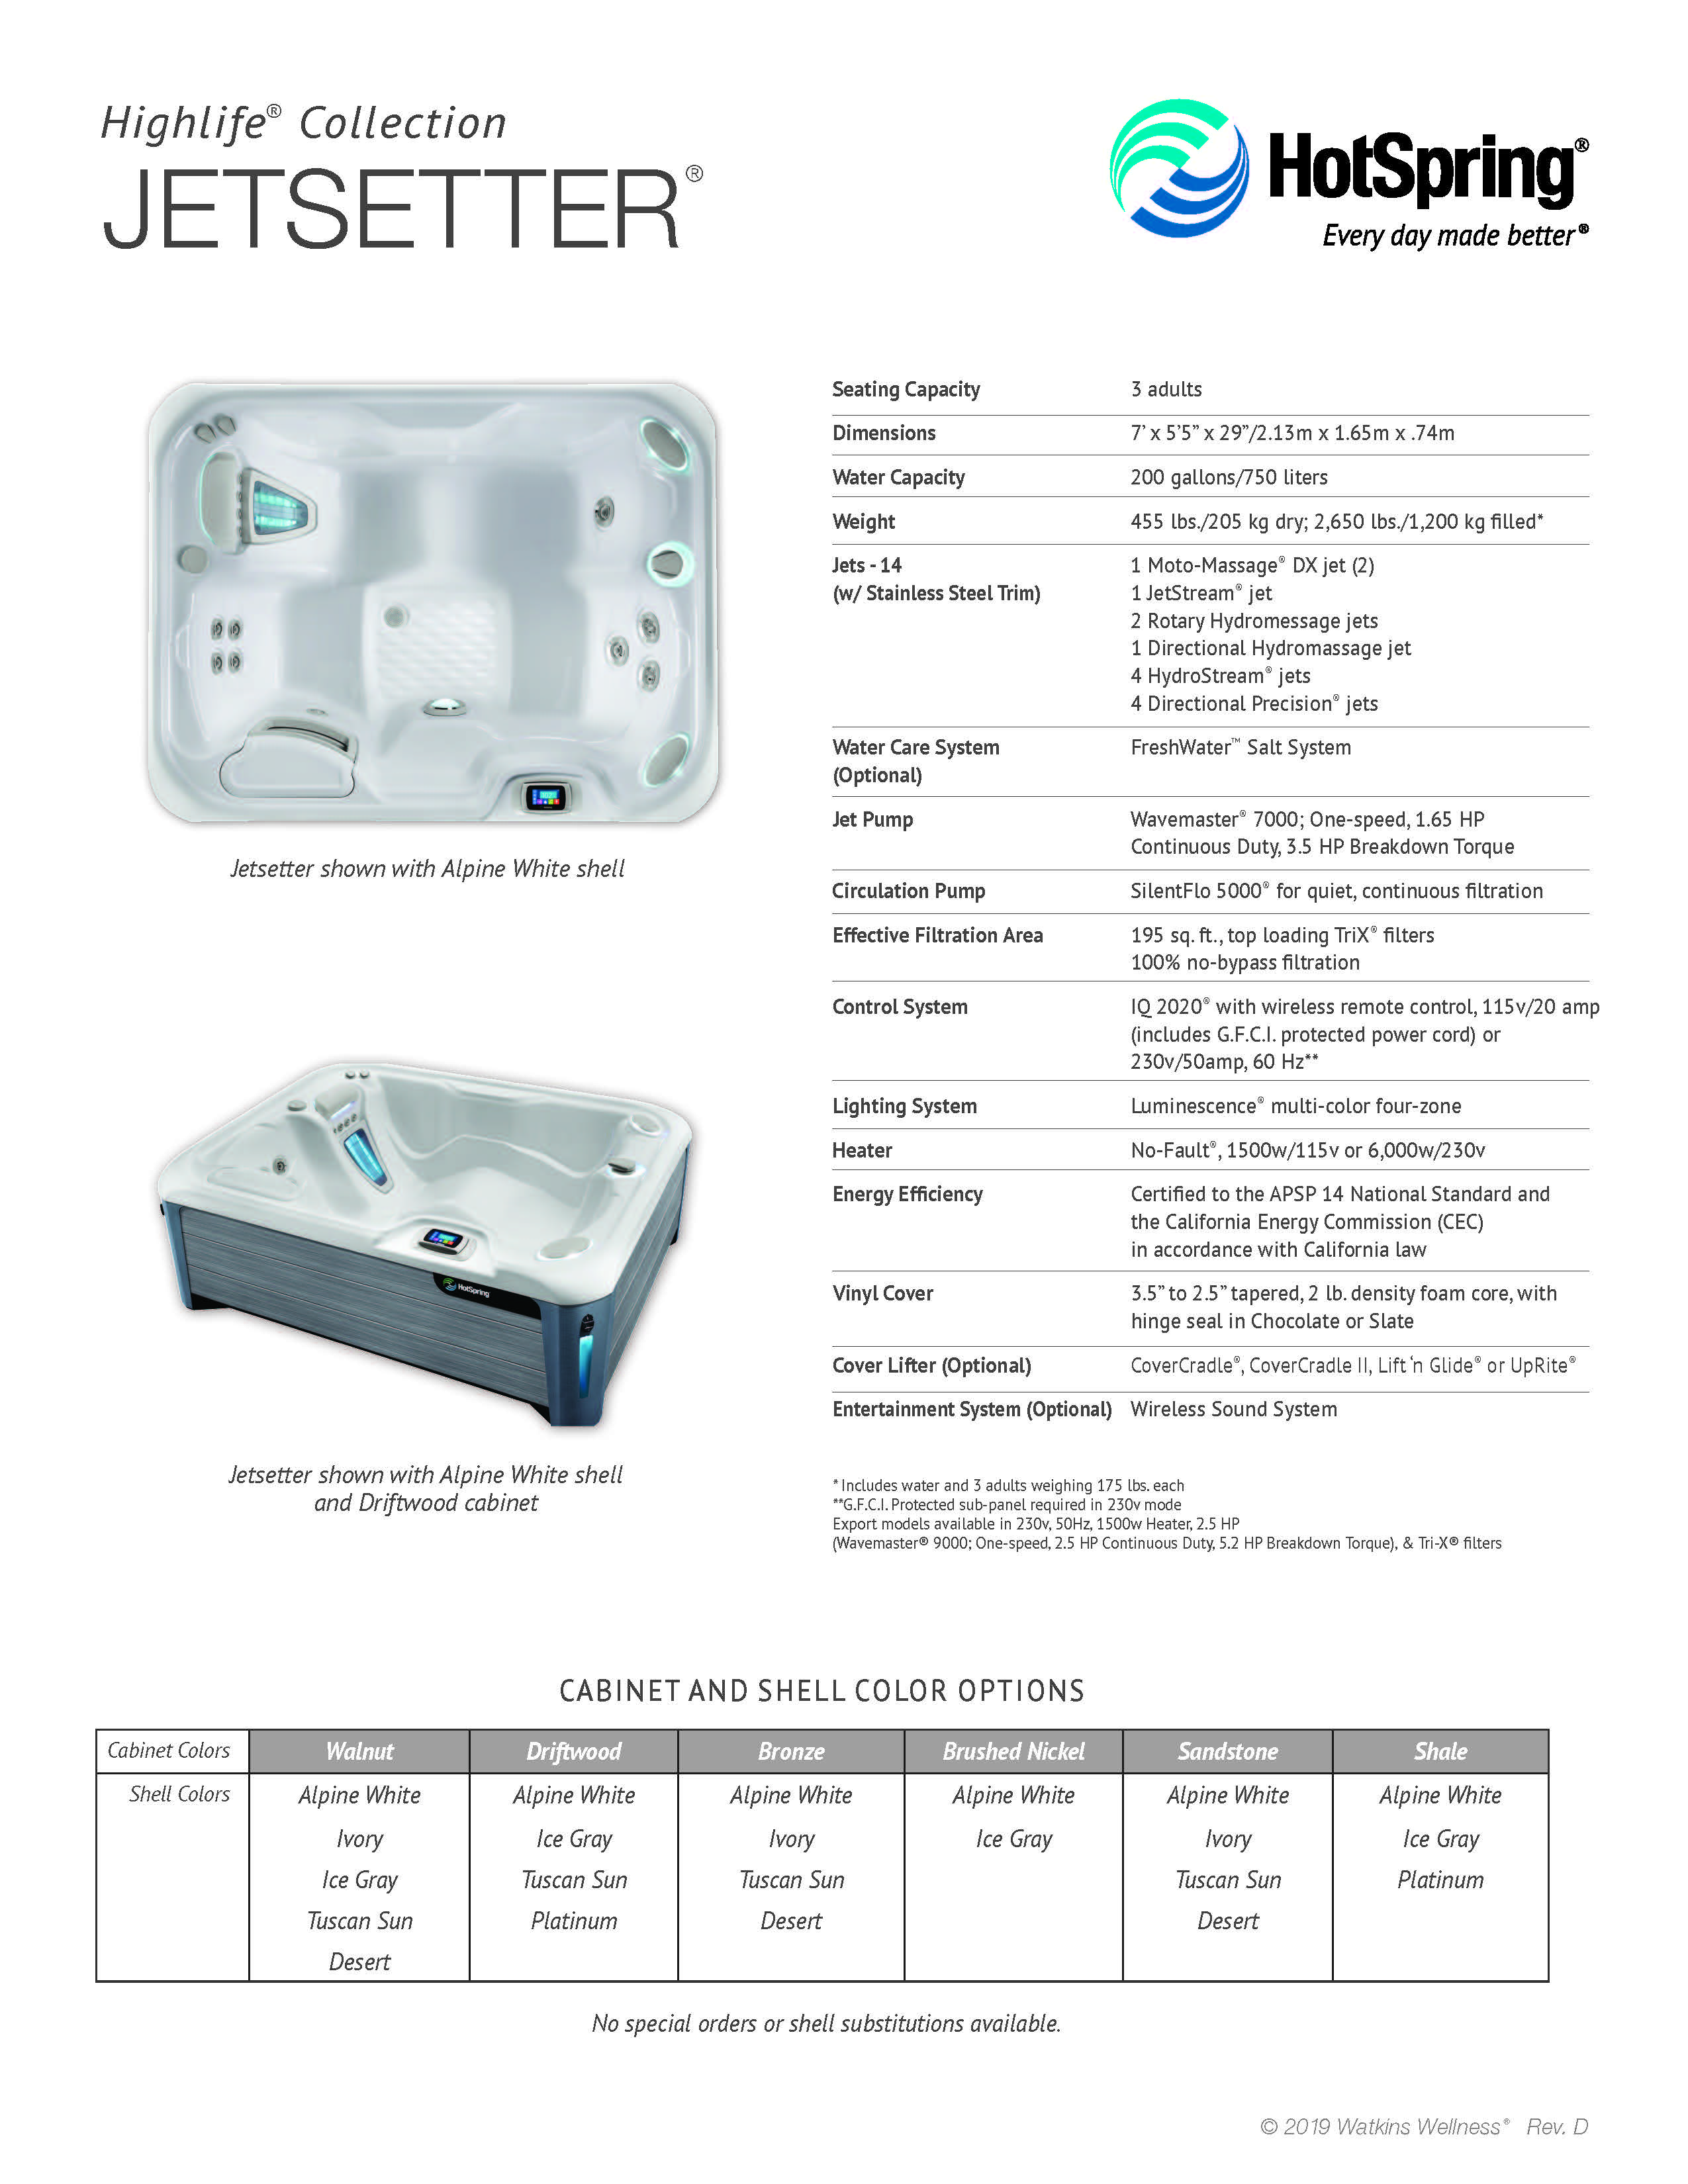 2019-hot-spring-highlife-jetsetter-specification-sheet-rev-d.jpg